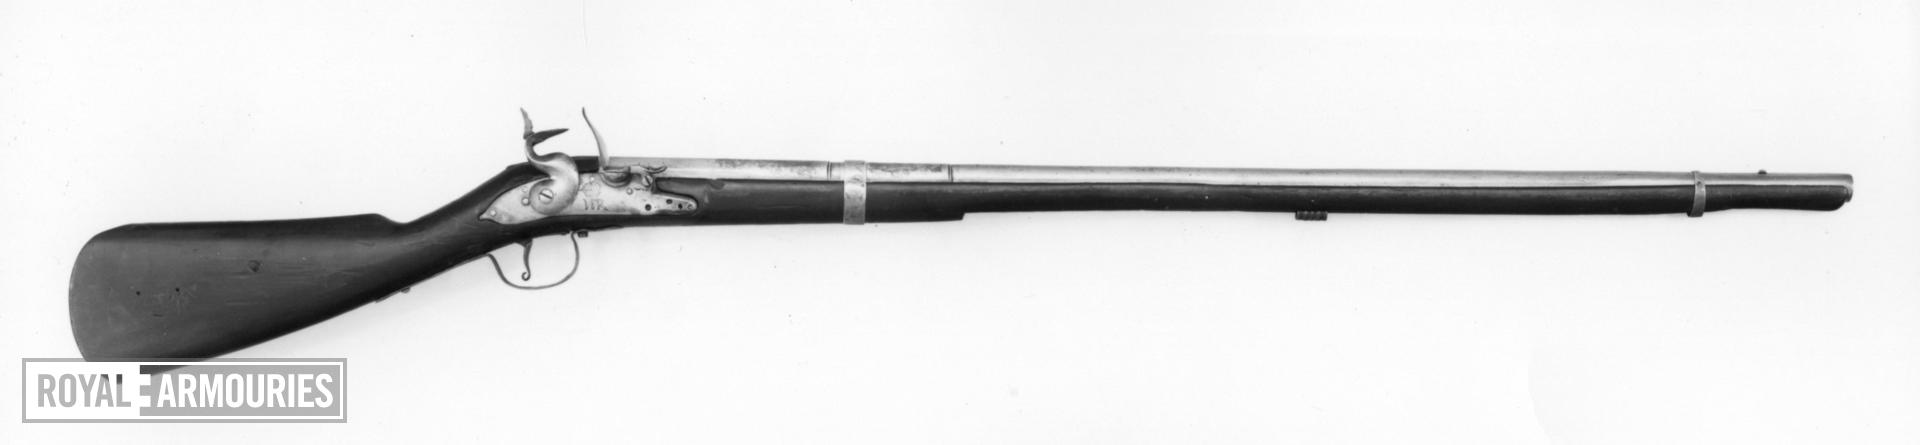 Flintlock muzzle-loading cavalry carbine - William and Mary Pattern